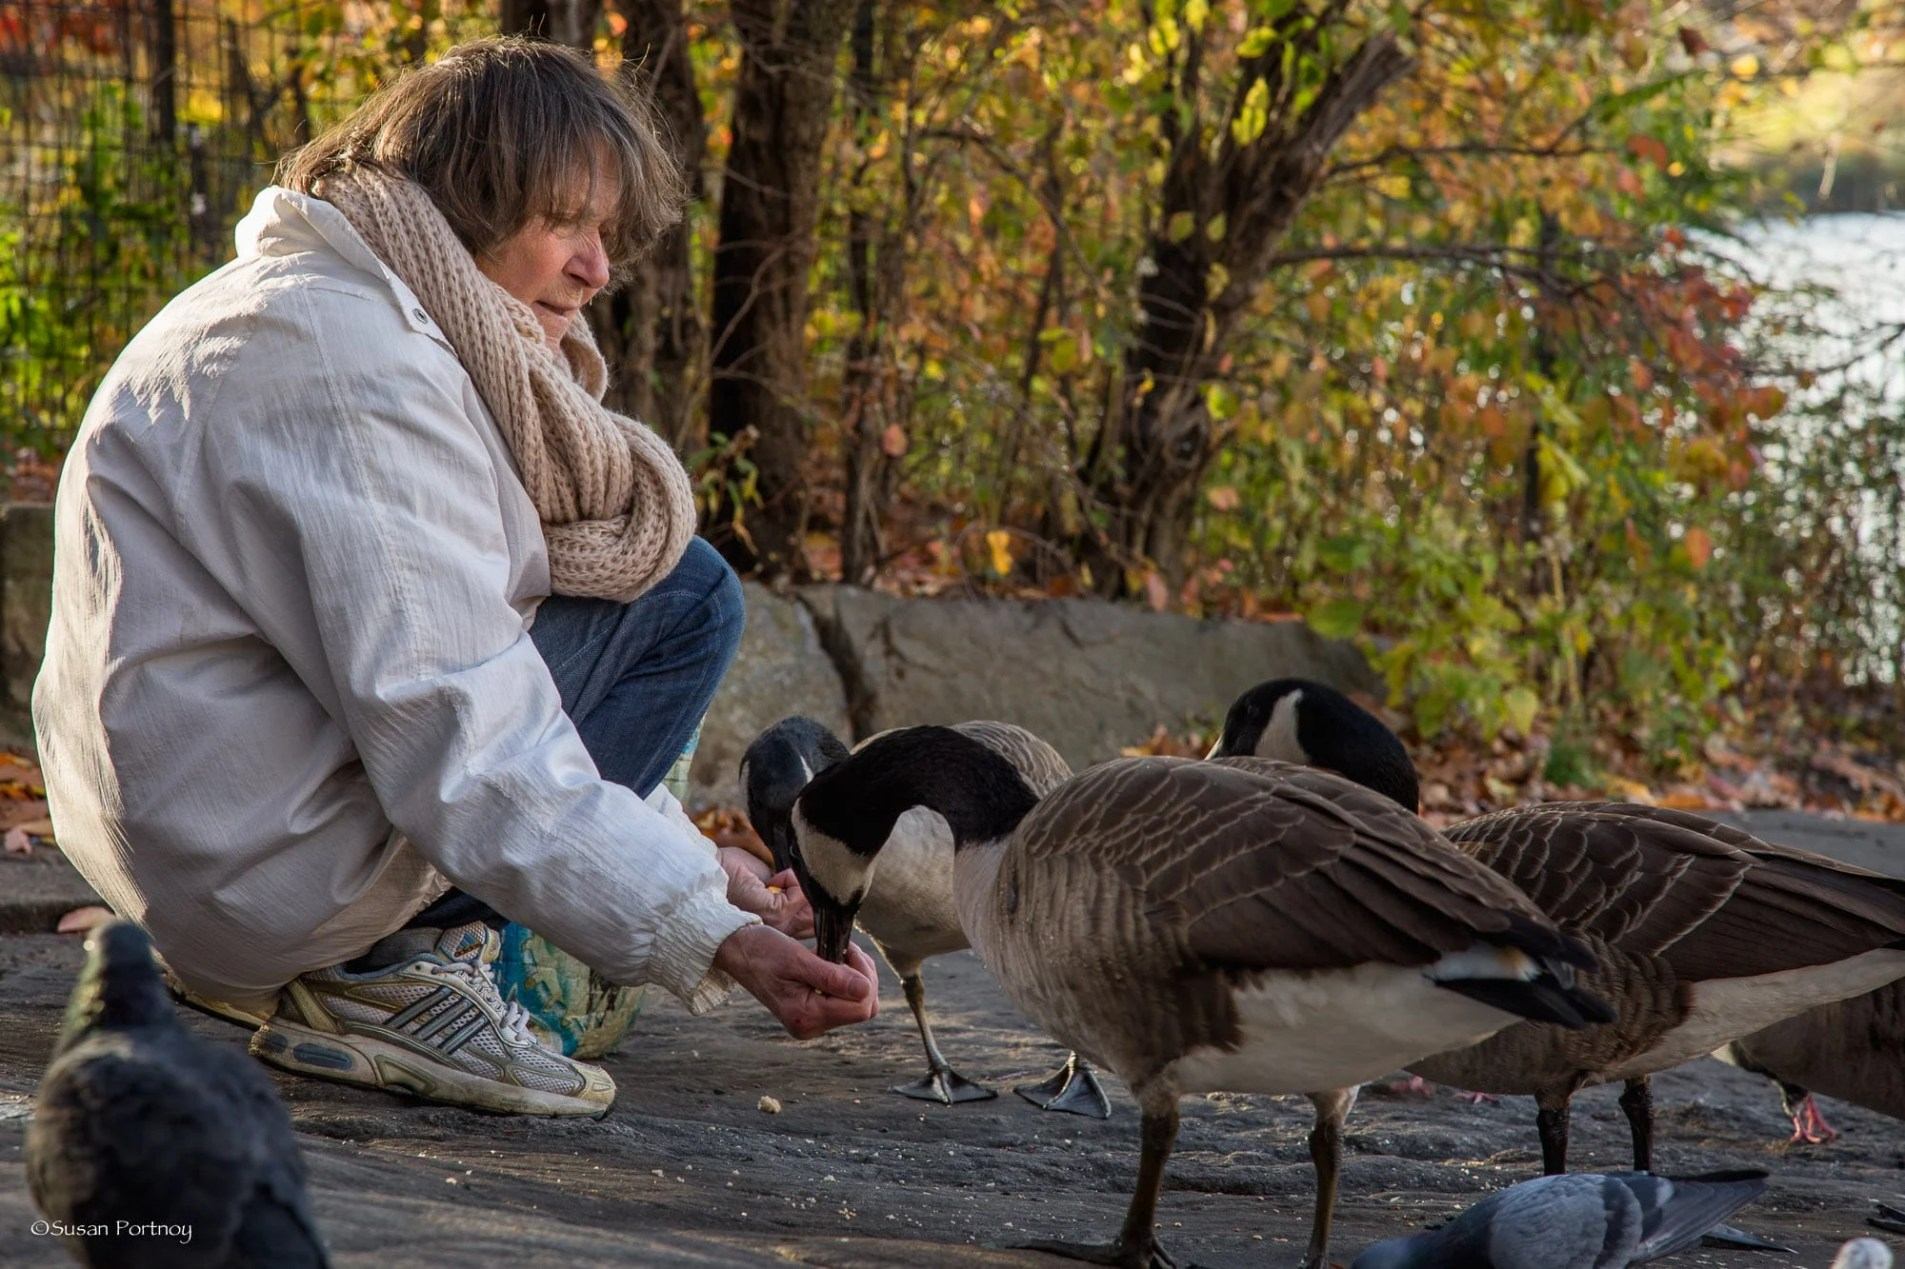 Lillian Bobo feeds two geese at once in Central Park